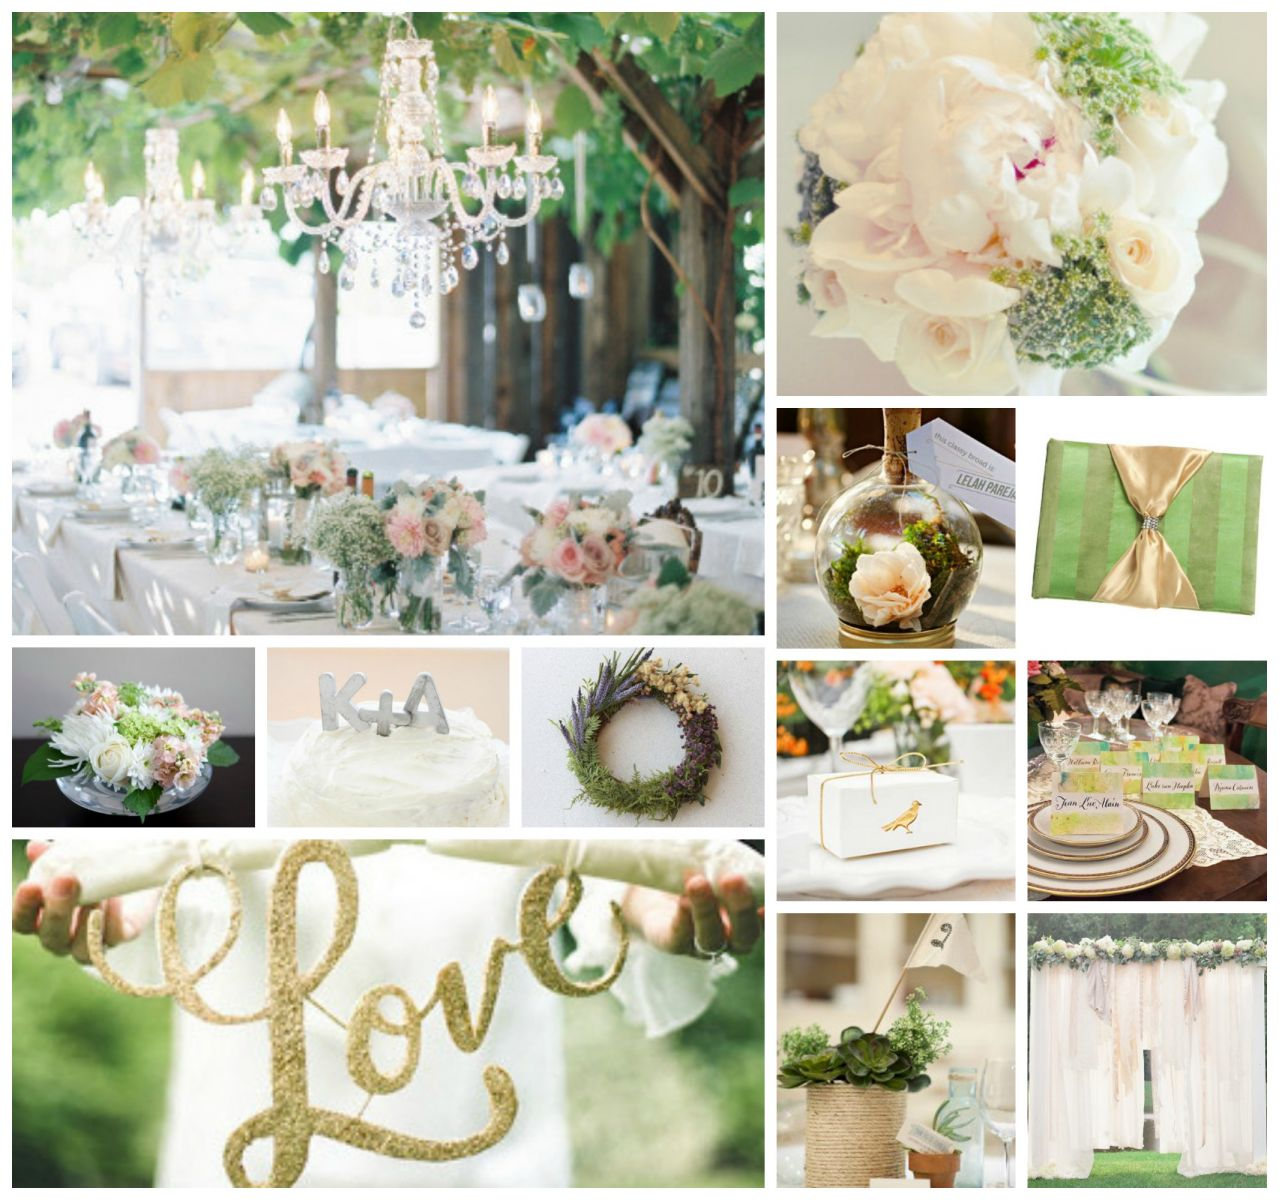 Color Ideas For Weddings: Wedding Color Schemes: Neutrals